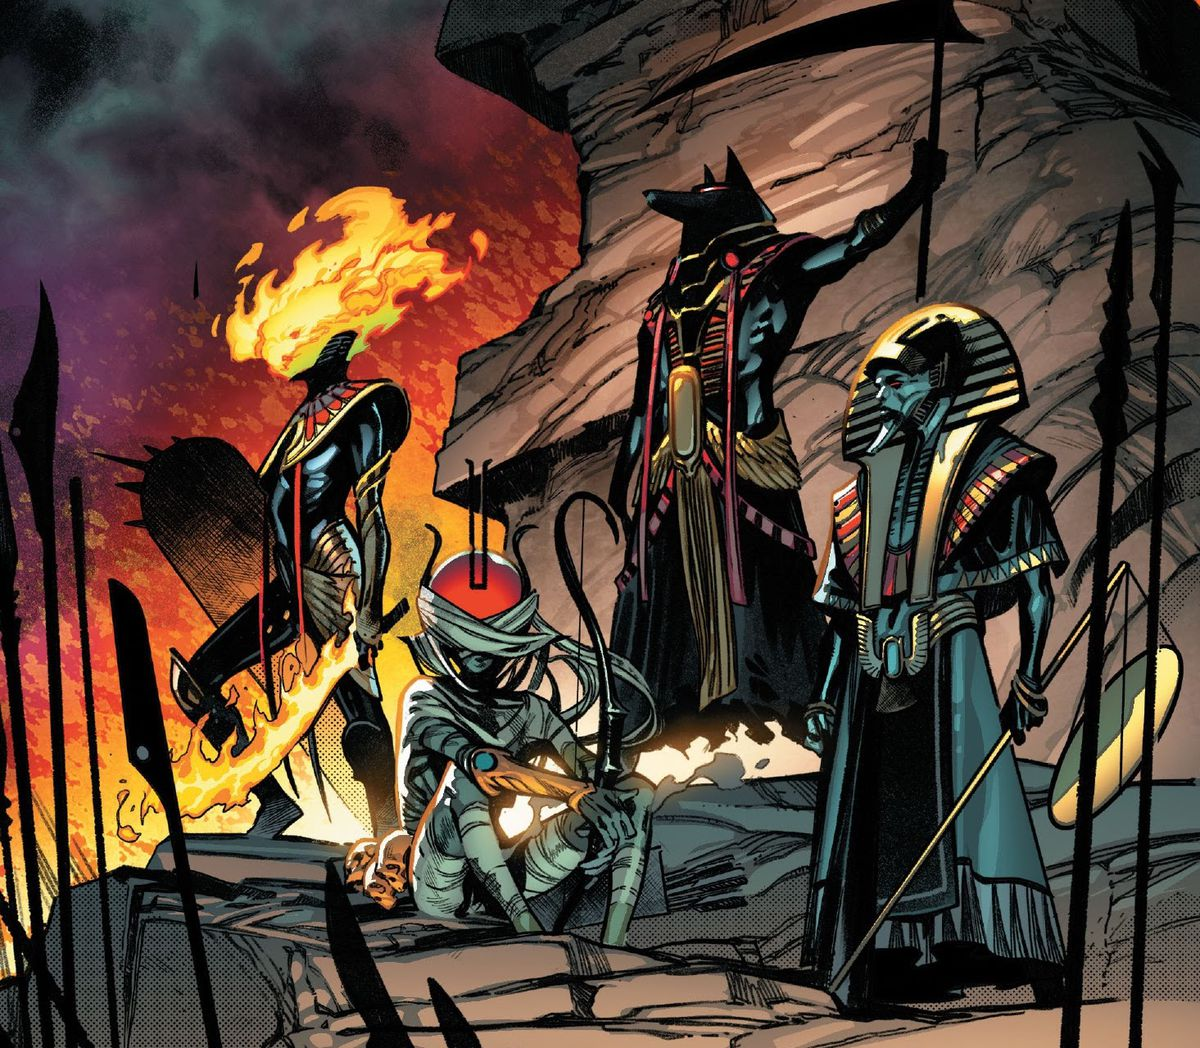 Apocalypse's first horsemen, decked out in ancient Egyptian style, a mummified sun-headed archer, a flame faced figure with a blazing sword, a jackal-headed god with a scythe, and an Egyptian death masked man with a scale, in X of Swords: Creation, Marvel Comics (2020).